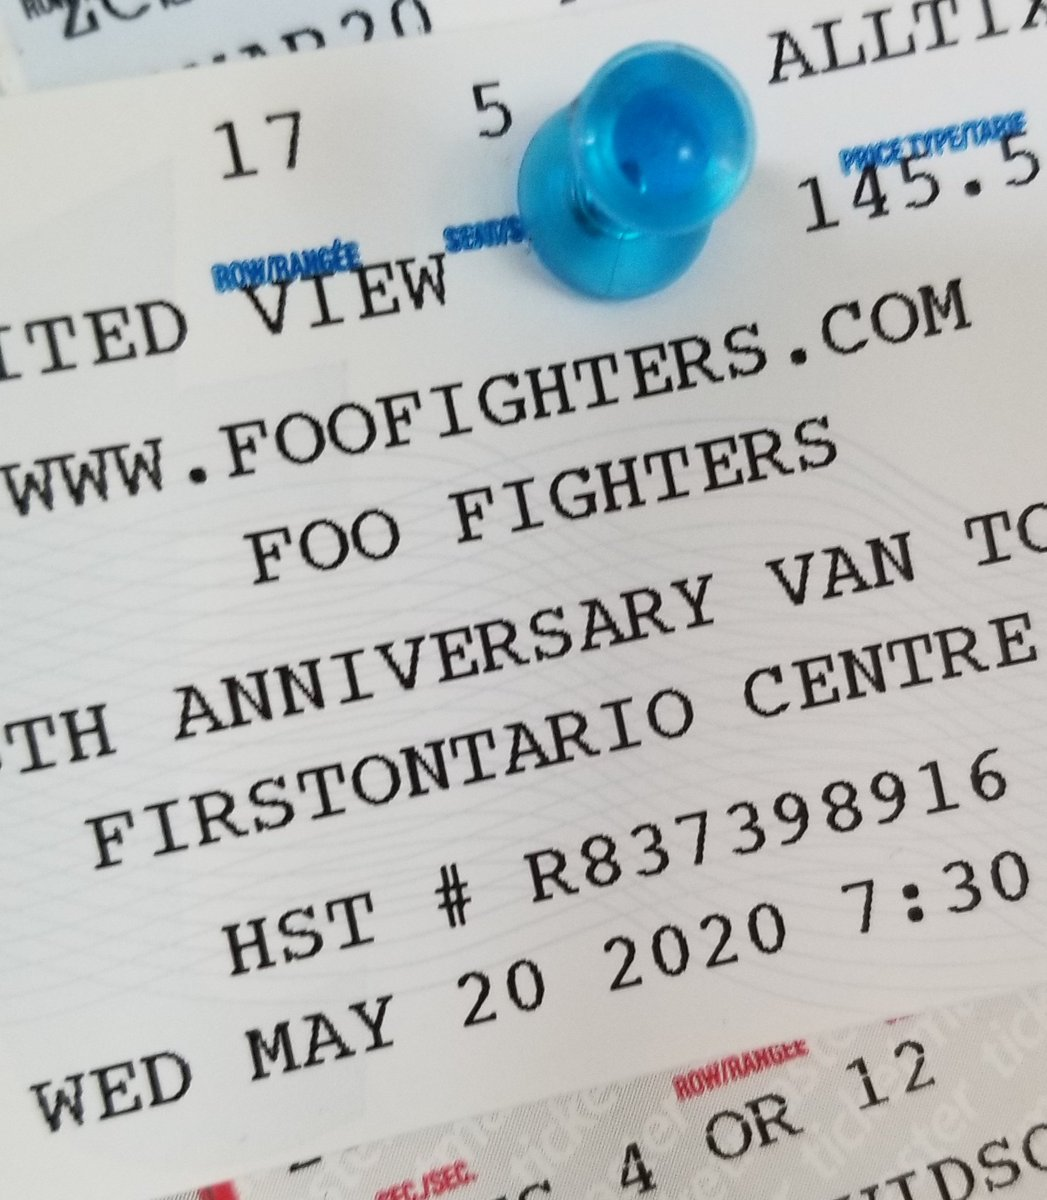 Cheers to our almost seeing @foofighters tonight in #Hamilton We will catch you next time #DaveGrohl @sandybeaches87 @TaylorQDunford<br>http://pic.twitter.com/C1rfSkIiV1